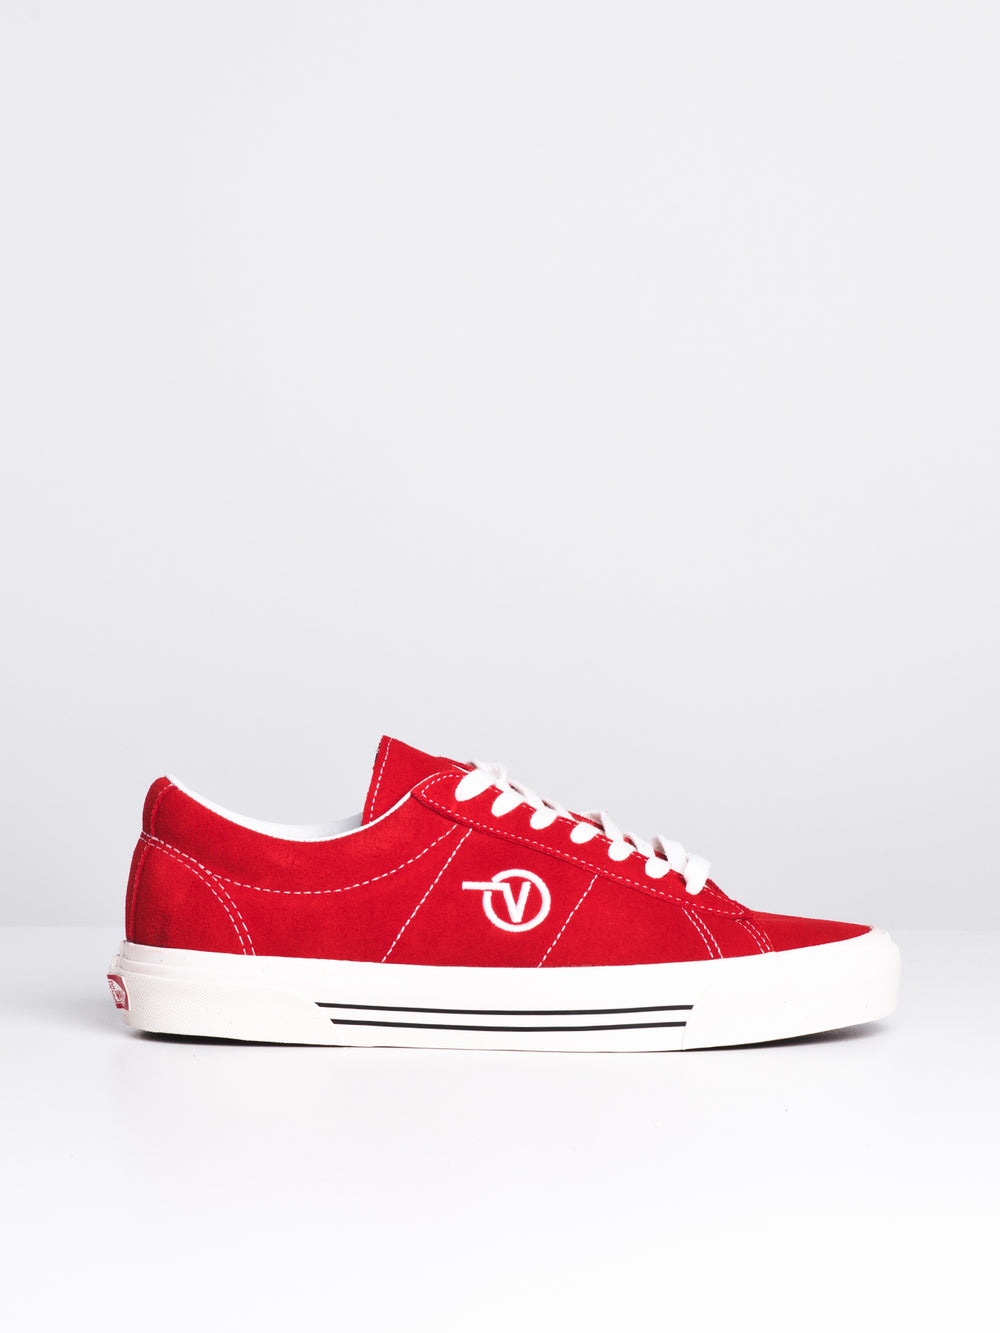 MENS SID DX SUEDE - OG RED